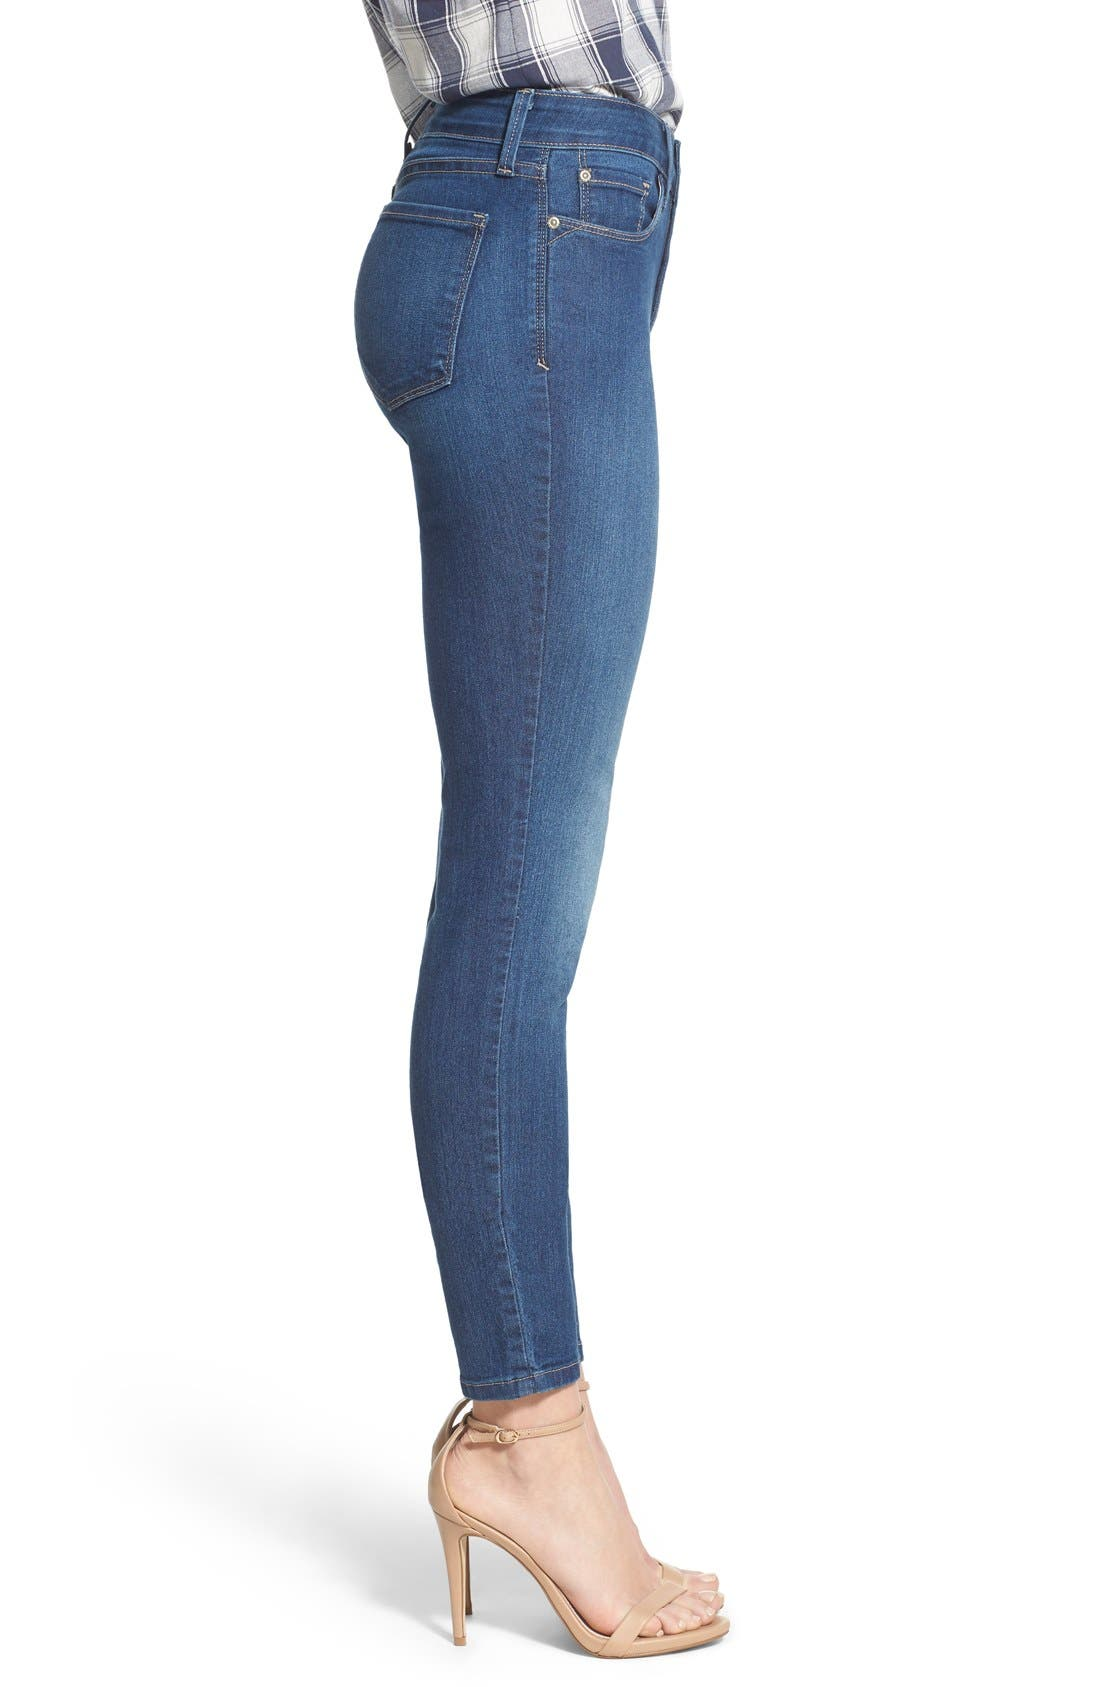 Ami Stretch Skinny Jeans,                             Alternate thumbnail 4, color,                             423